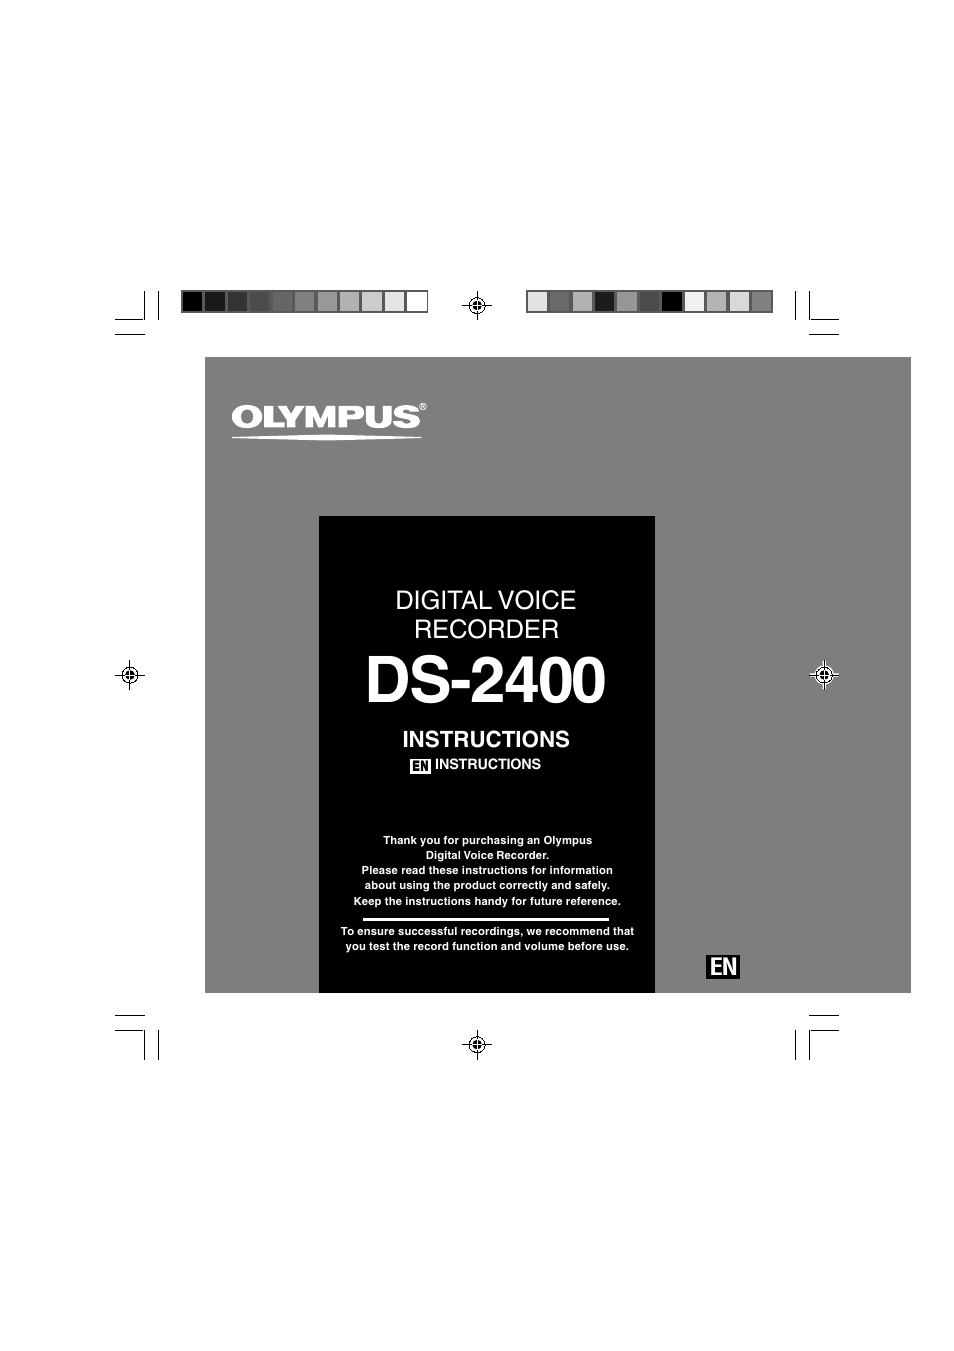 OLYMPUS DS-2400 DRIVER FOR PC